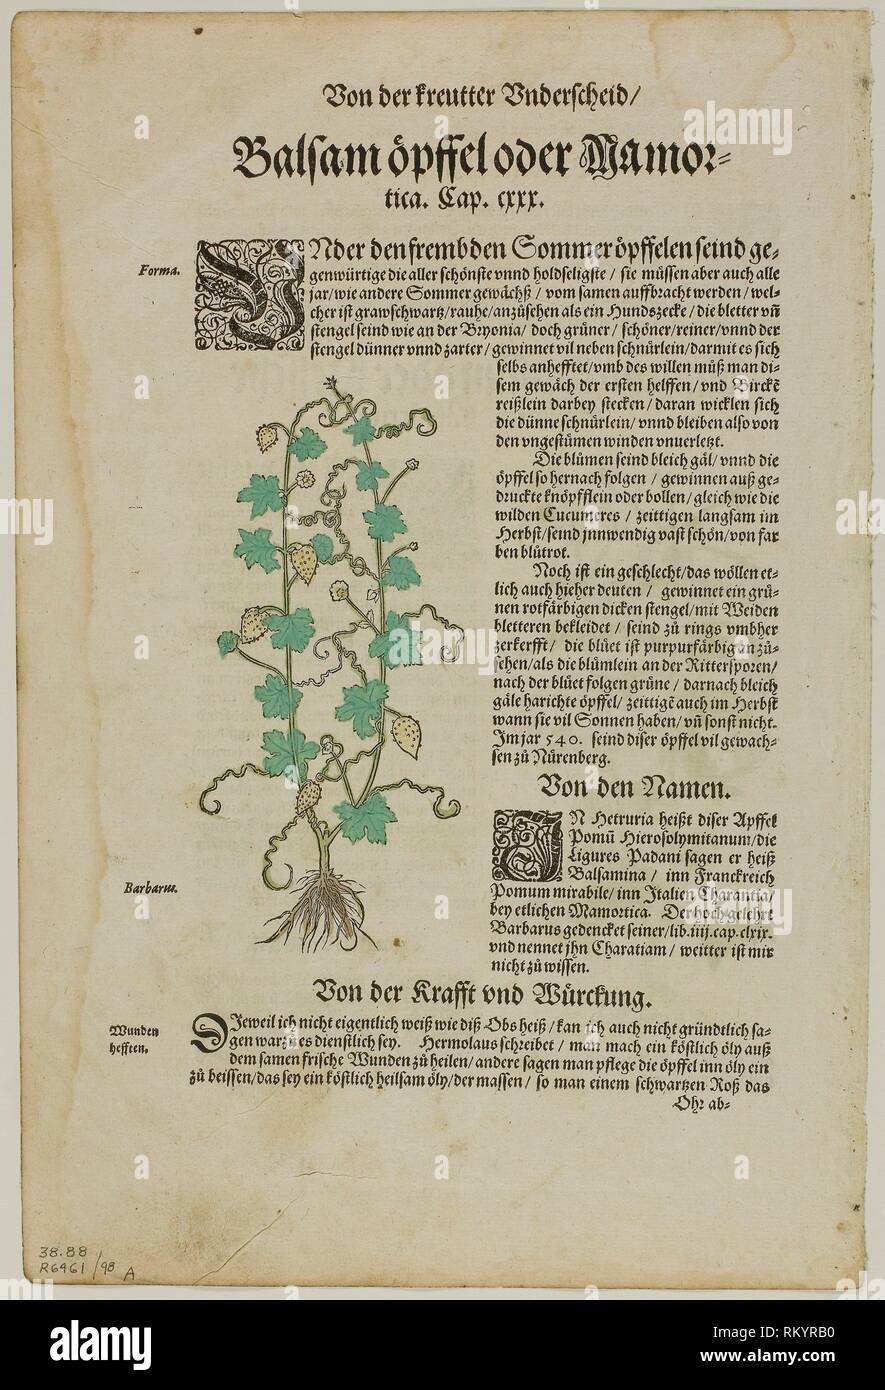 Leaf from New Kreuterbuch by Hieronymus Bock, plate 98 from Woodcuts from Books of the XVI Century - 1580, assembled into portfolio 1937 - Attributed Stock Photo